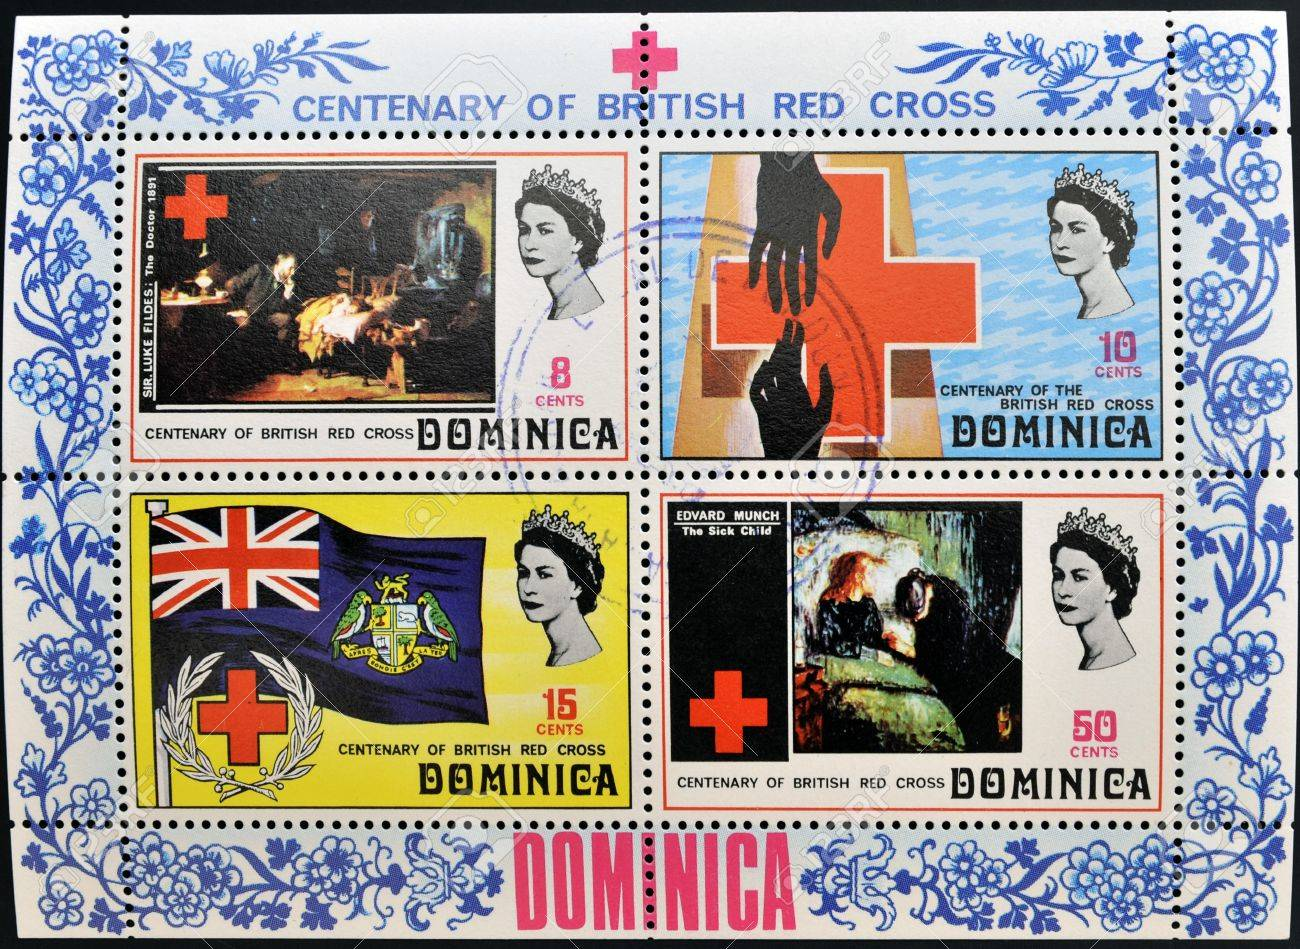 DOMINICA - CIRCA 1970  Collection stamps dedicated to centenary of the British Red Cross, circa 1970 Stock Photo - 14145002